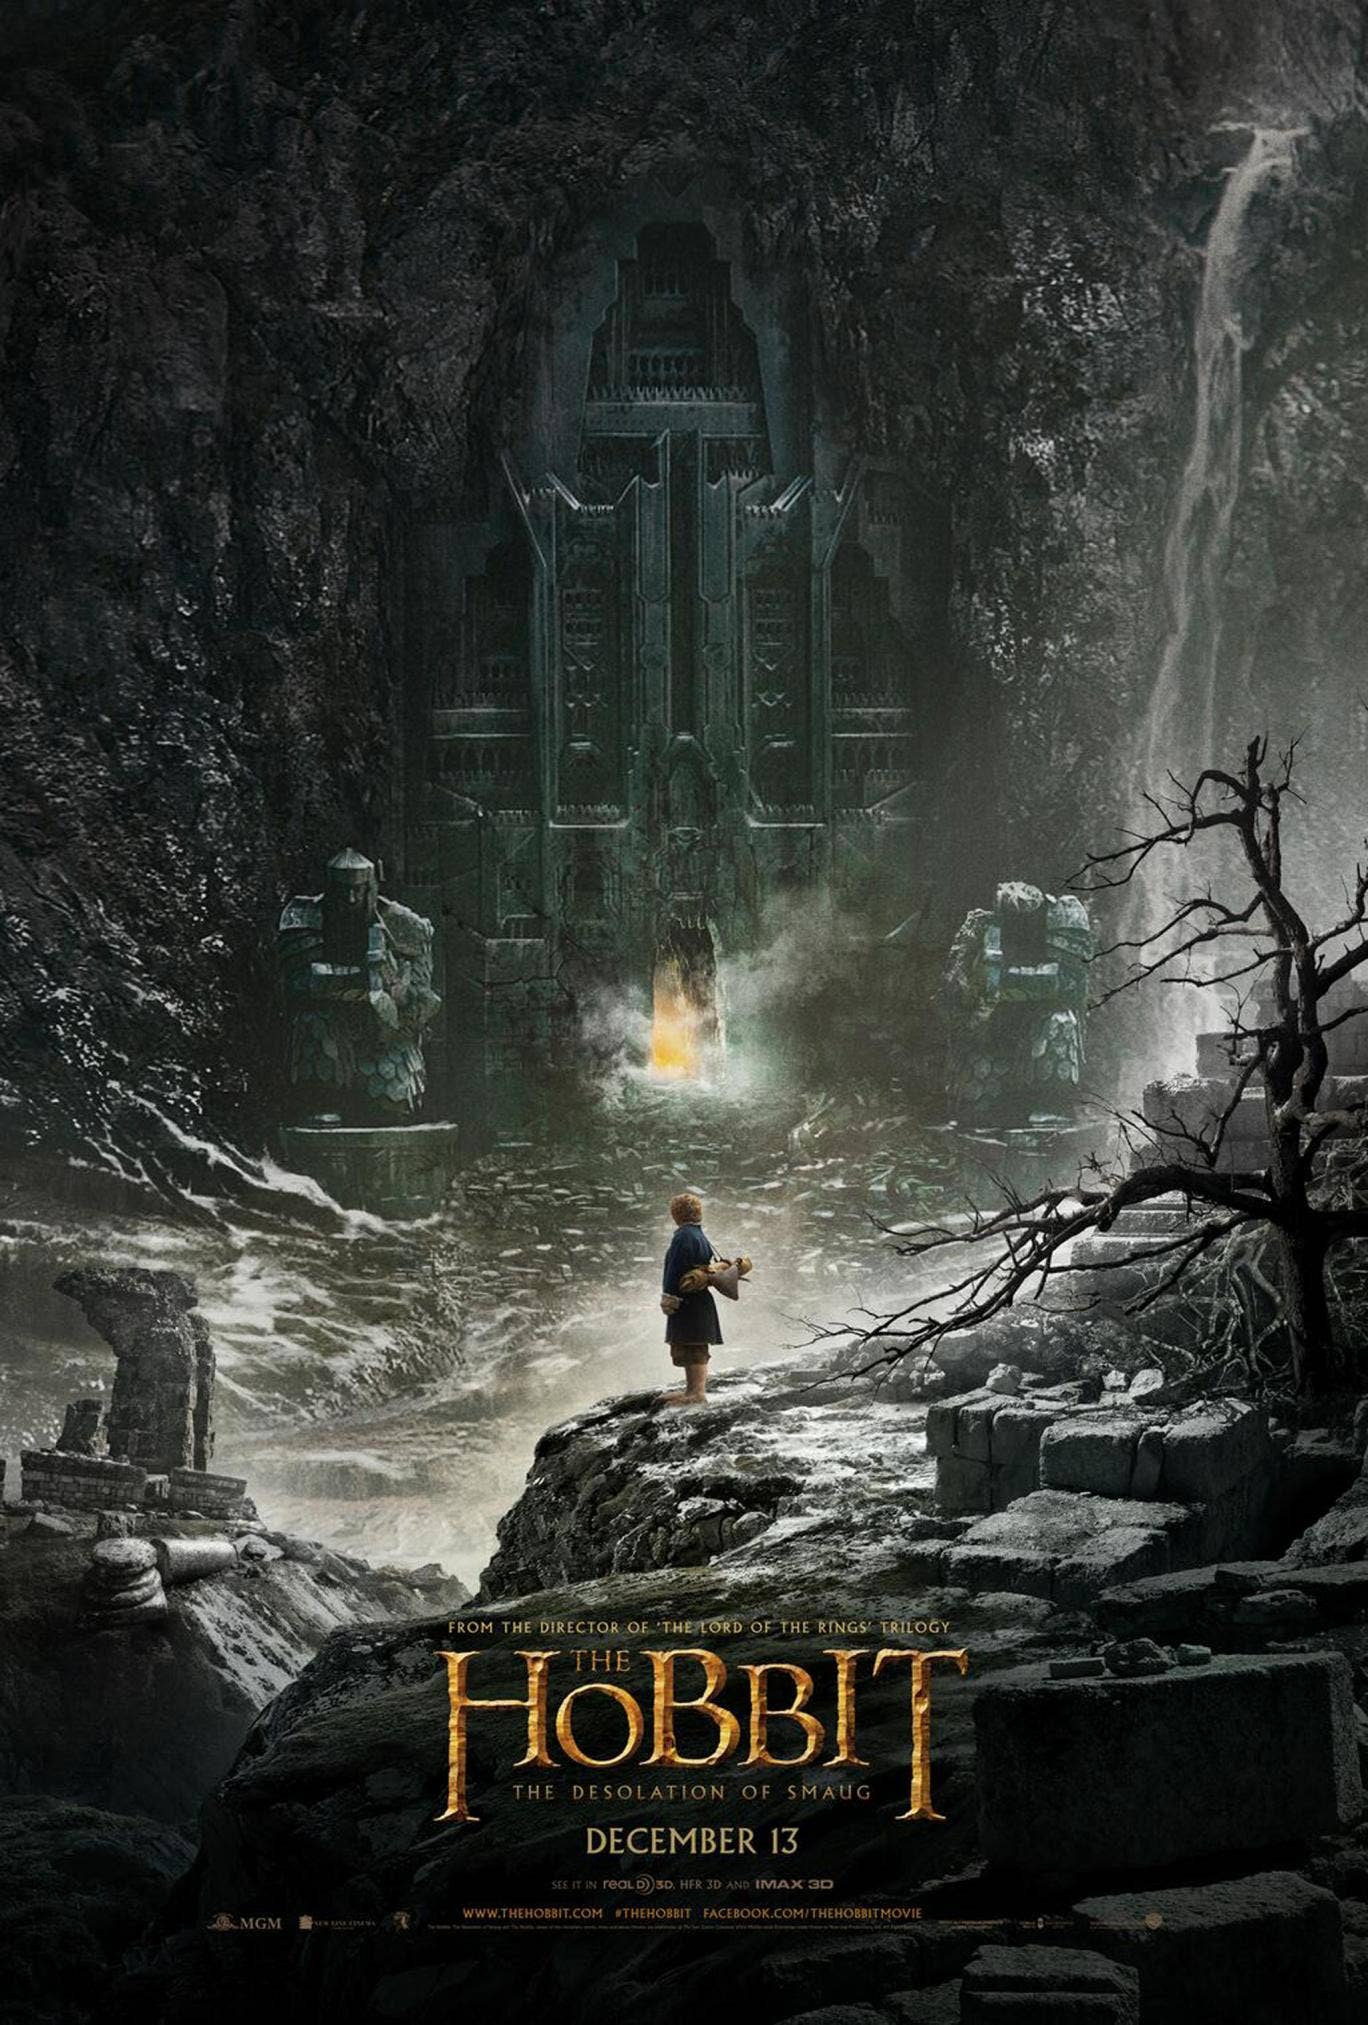 The Hobbit: The Desolation of Smaug poster has been revealed online. The film is due to be released in December 2013.